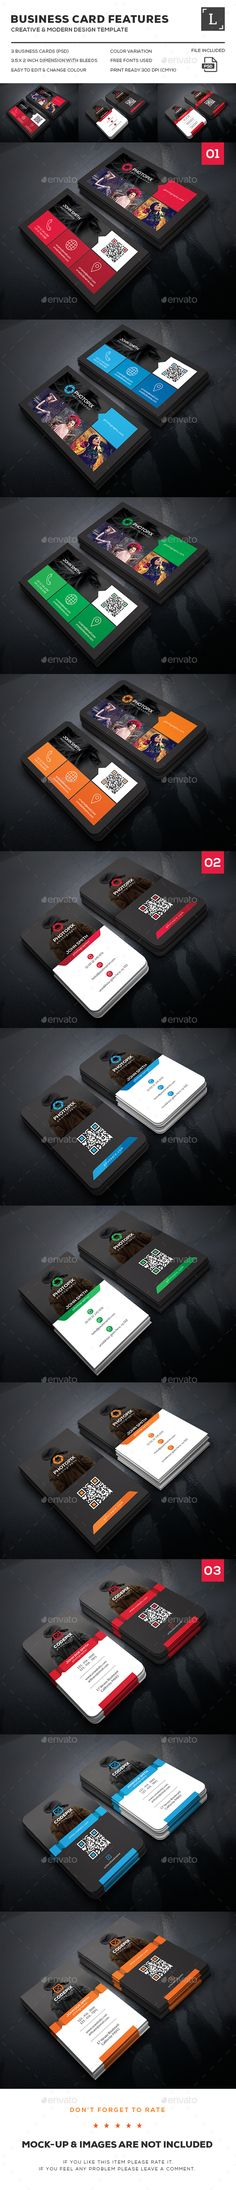 Photography Business Card Bundle Templates PSD. Download here: http://graphicriver.net/item/photography-business-card-bundle/15986738?ref=ksioks